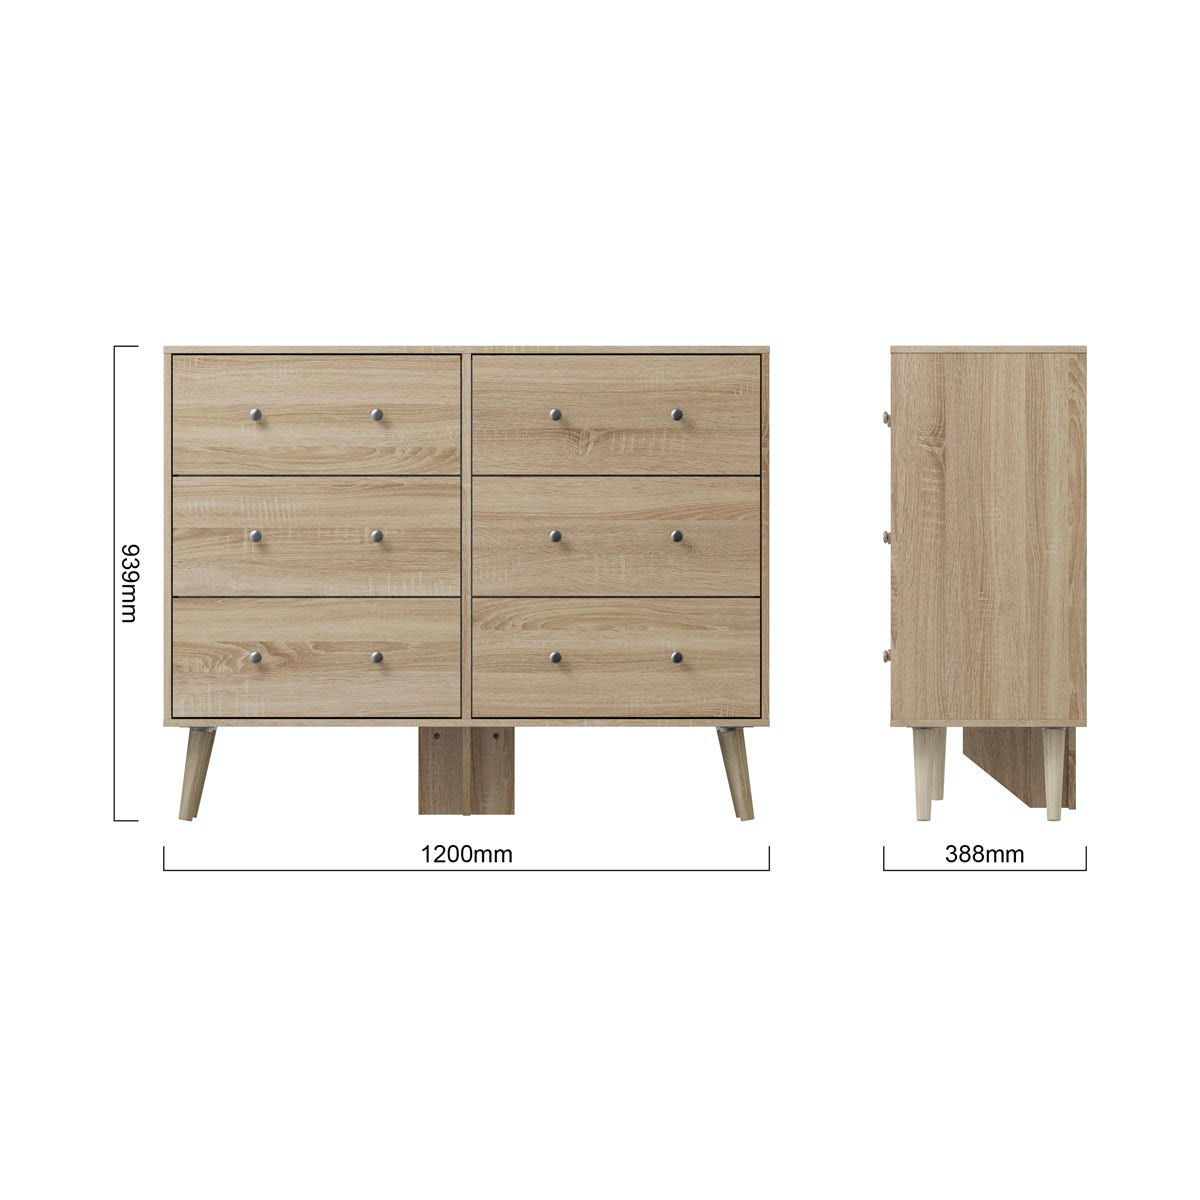 Dimensions for MFI Helsinki Oak 6 drawer chest